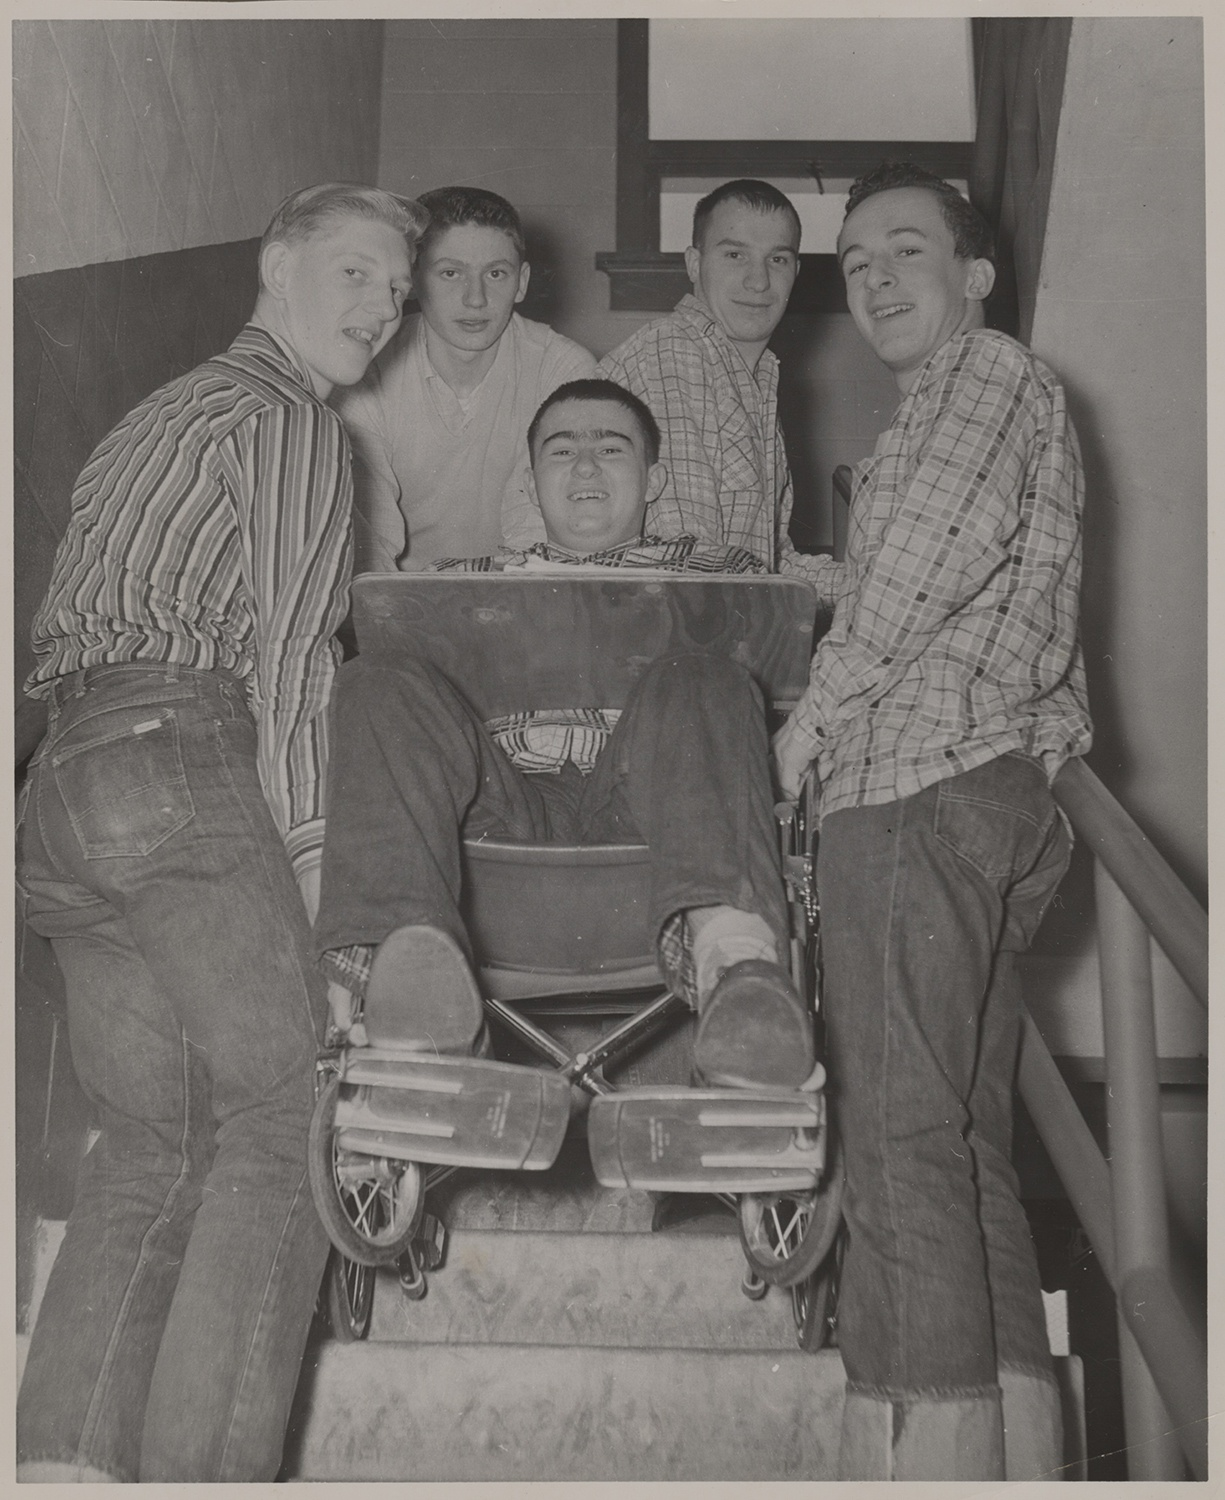 Paul being transported up a flight of stairs by four of his classmates while in high school in 1958. Holly and Paul Dick Family Papers and Photographs, MSS 1177, Detre Library & Archives at the History Center.